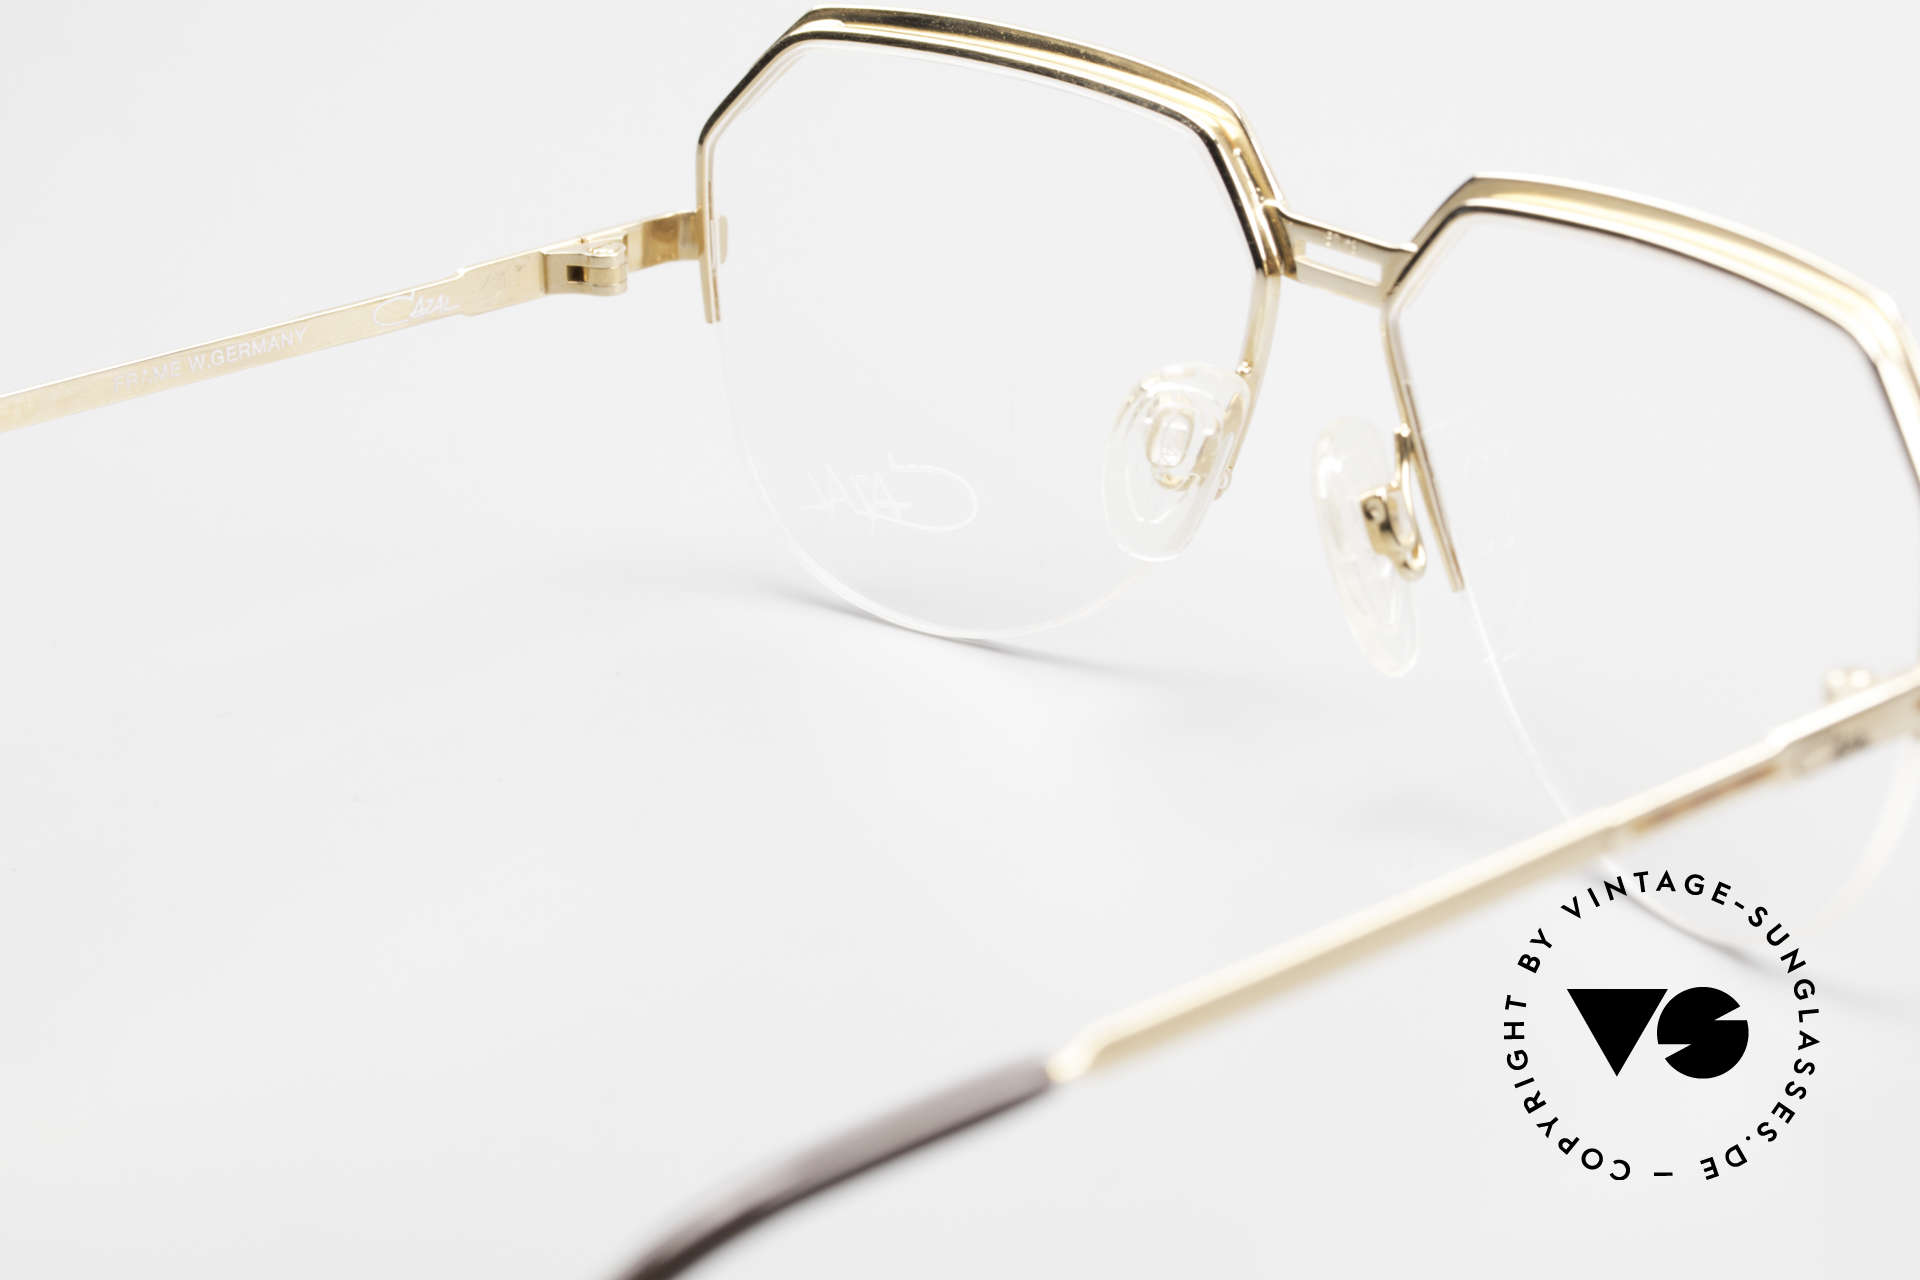 Cazal 732 80's West Germany Eyeglasses, DEMO lenses should be replaced with prescriptions, Made for Men